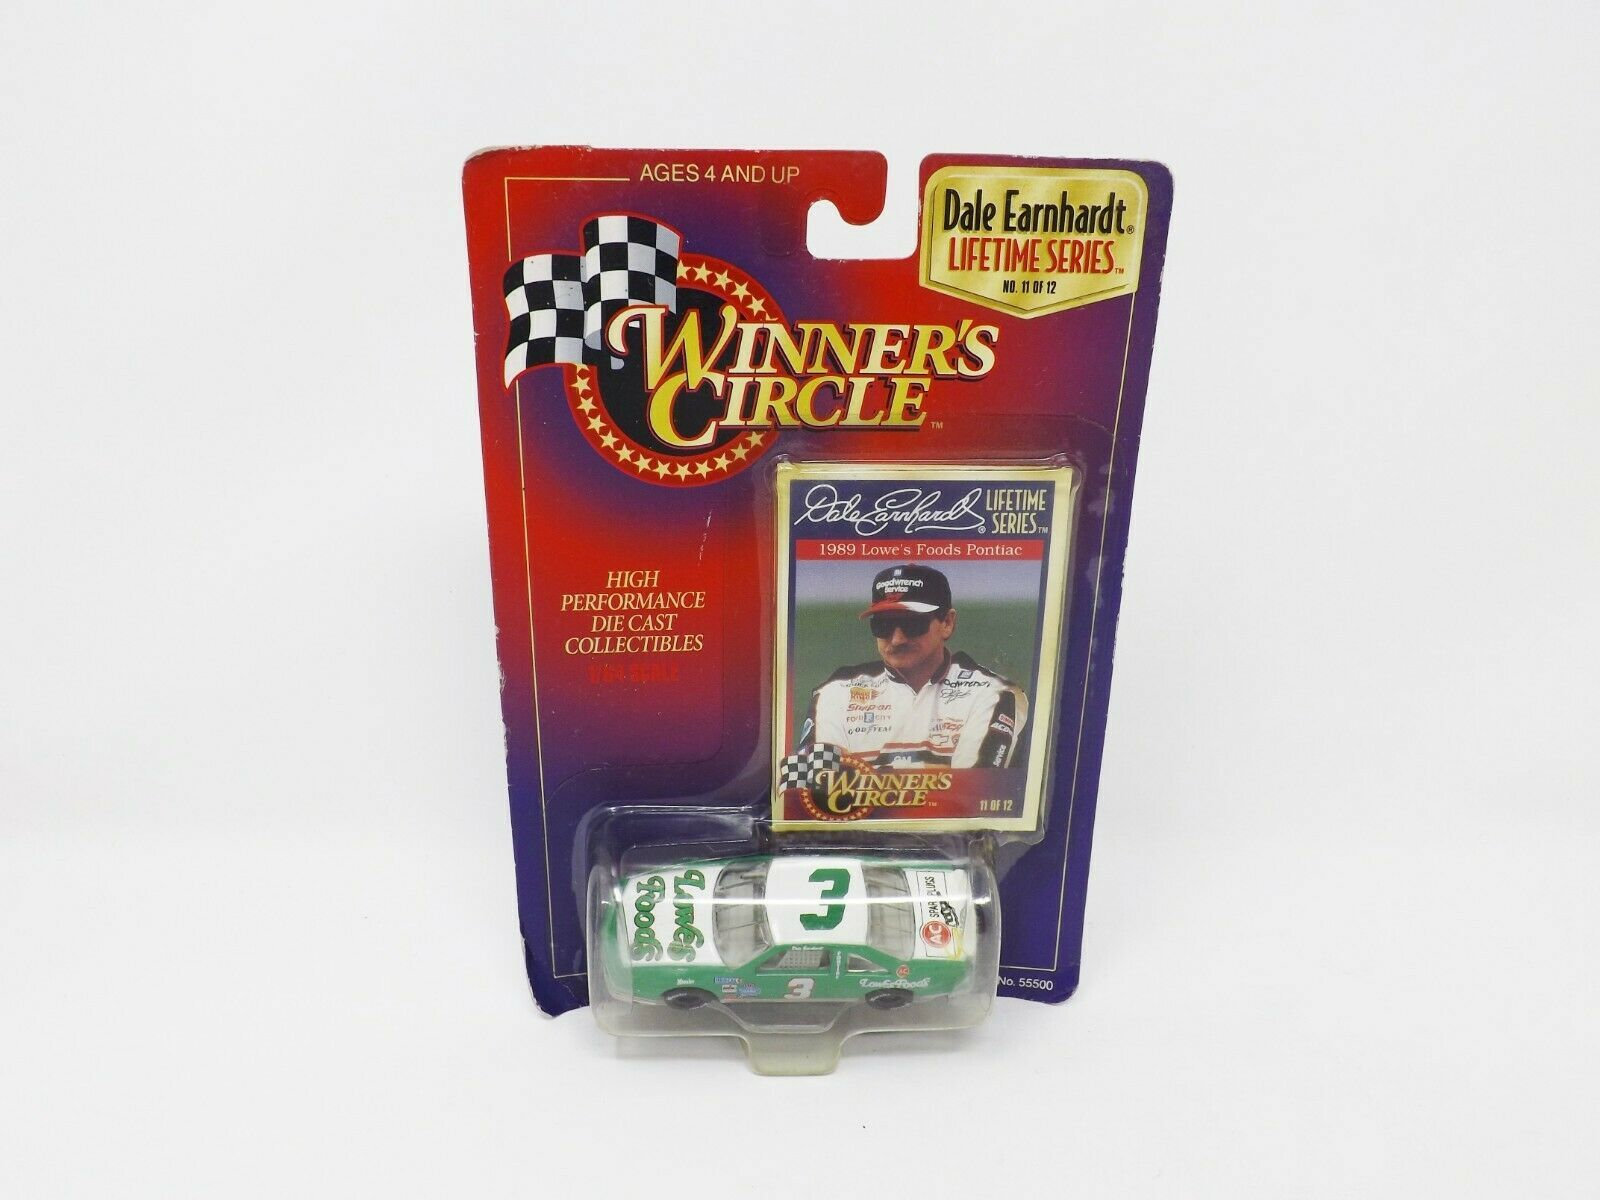 Primary image for 1997 Winner's Circle Lifetime Series Die Cast Car & Trading Card Dale Earnhardt